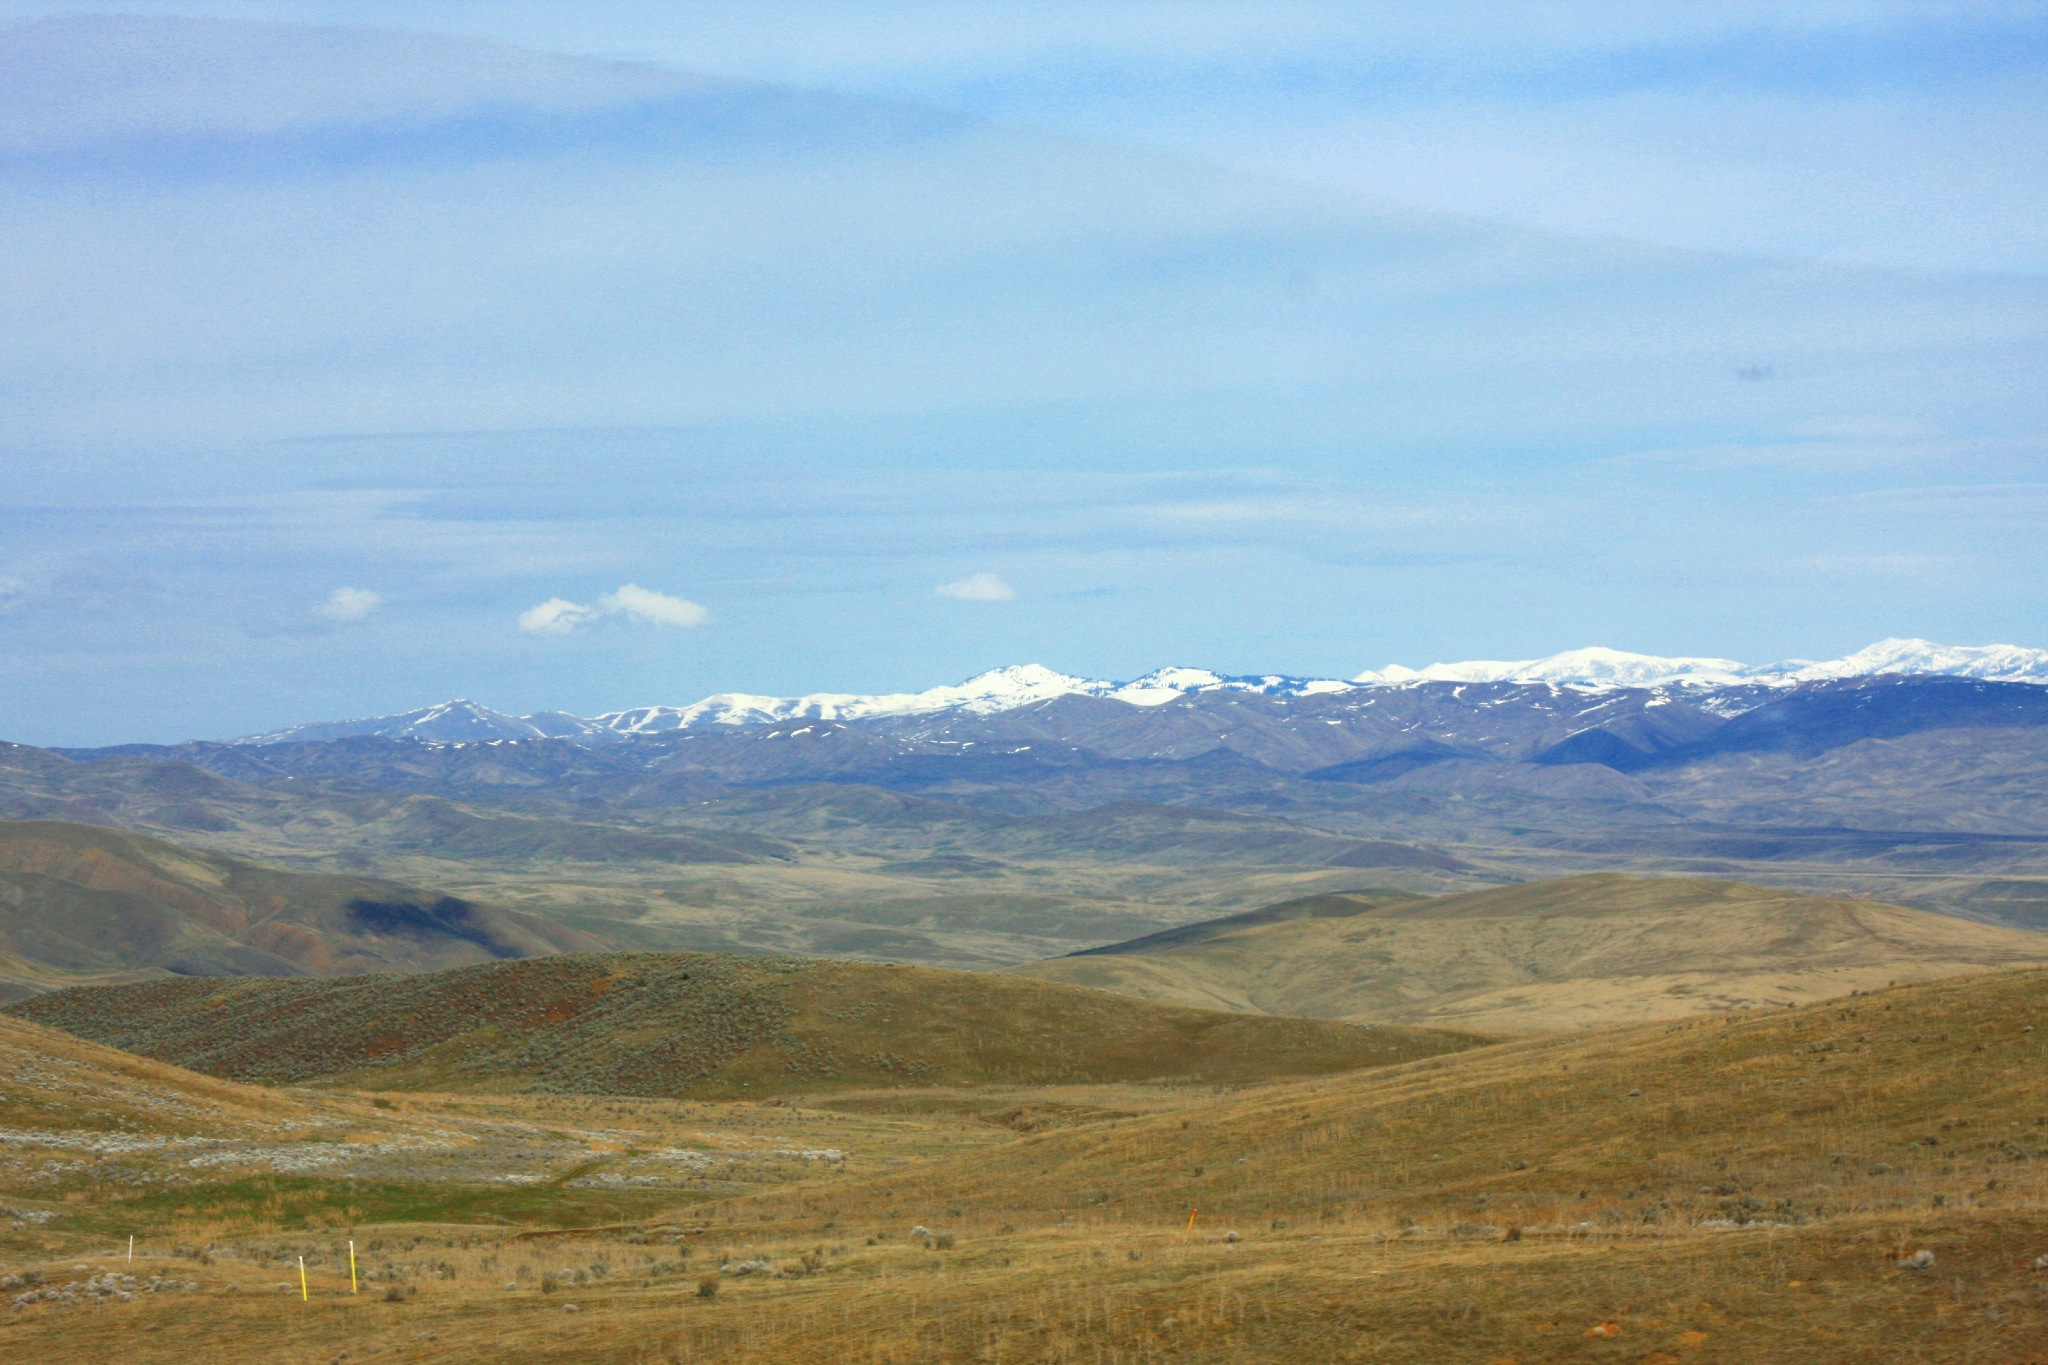 Snowcapped Peaks In The Distance With Rolling Hills Foreground